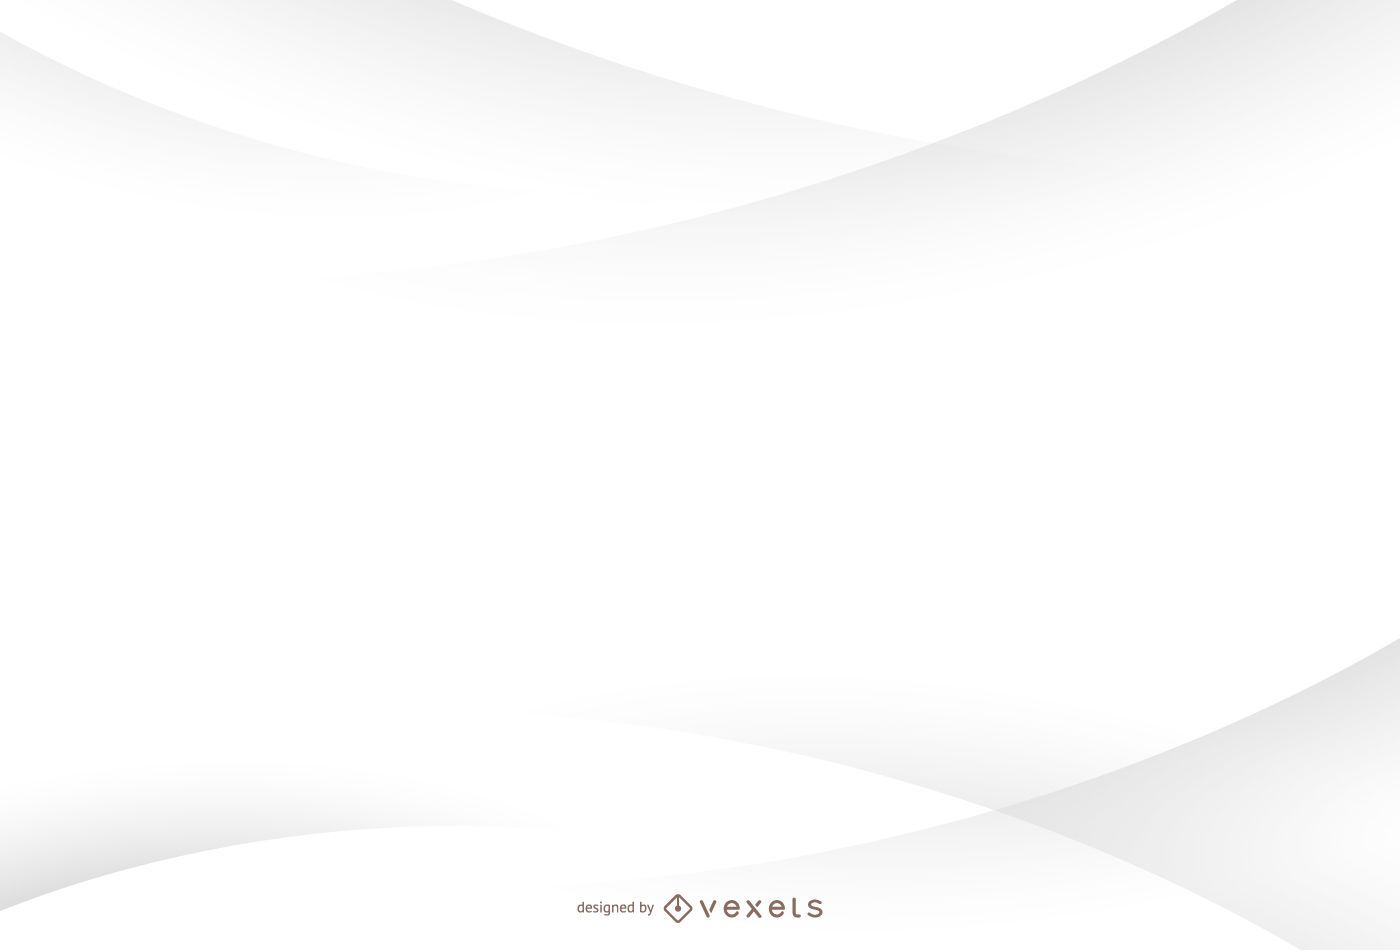 Minimalist white background with curves